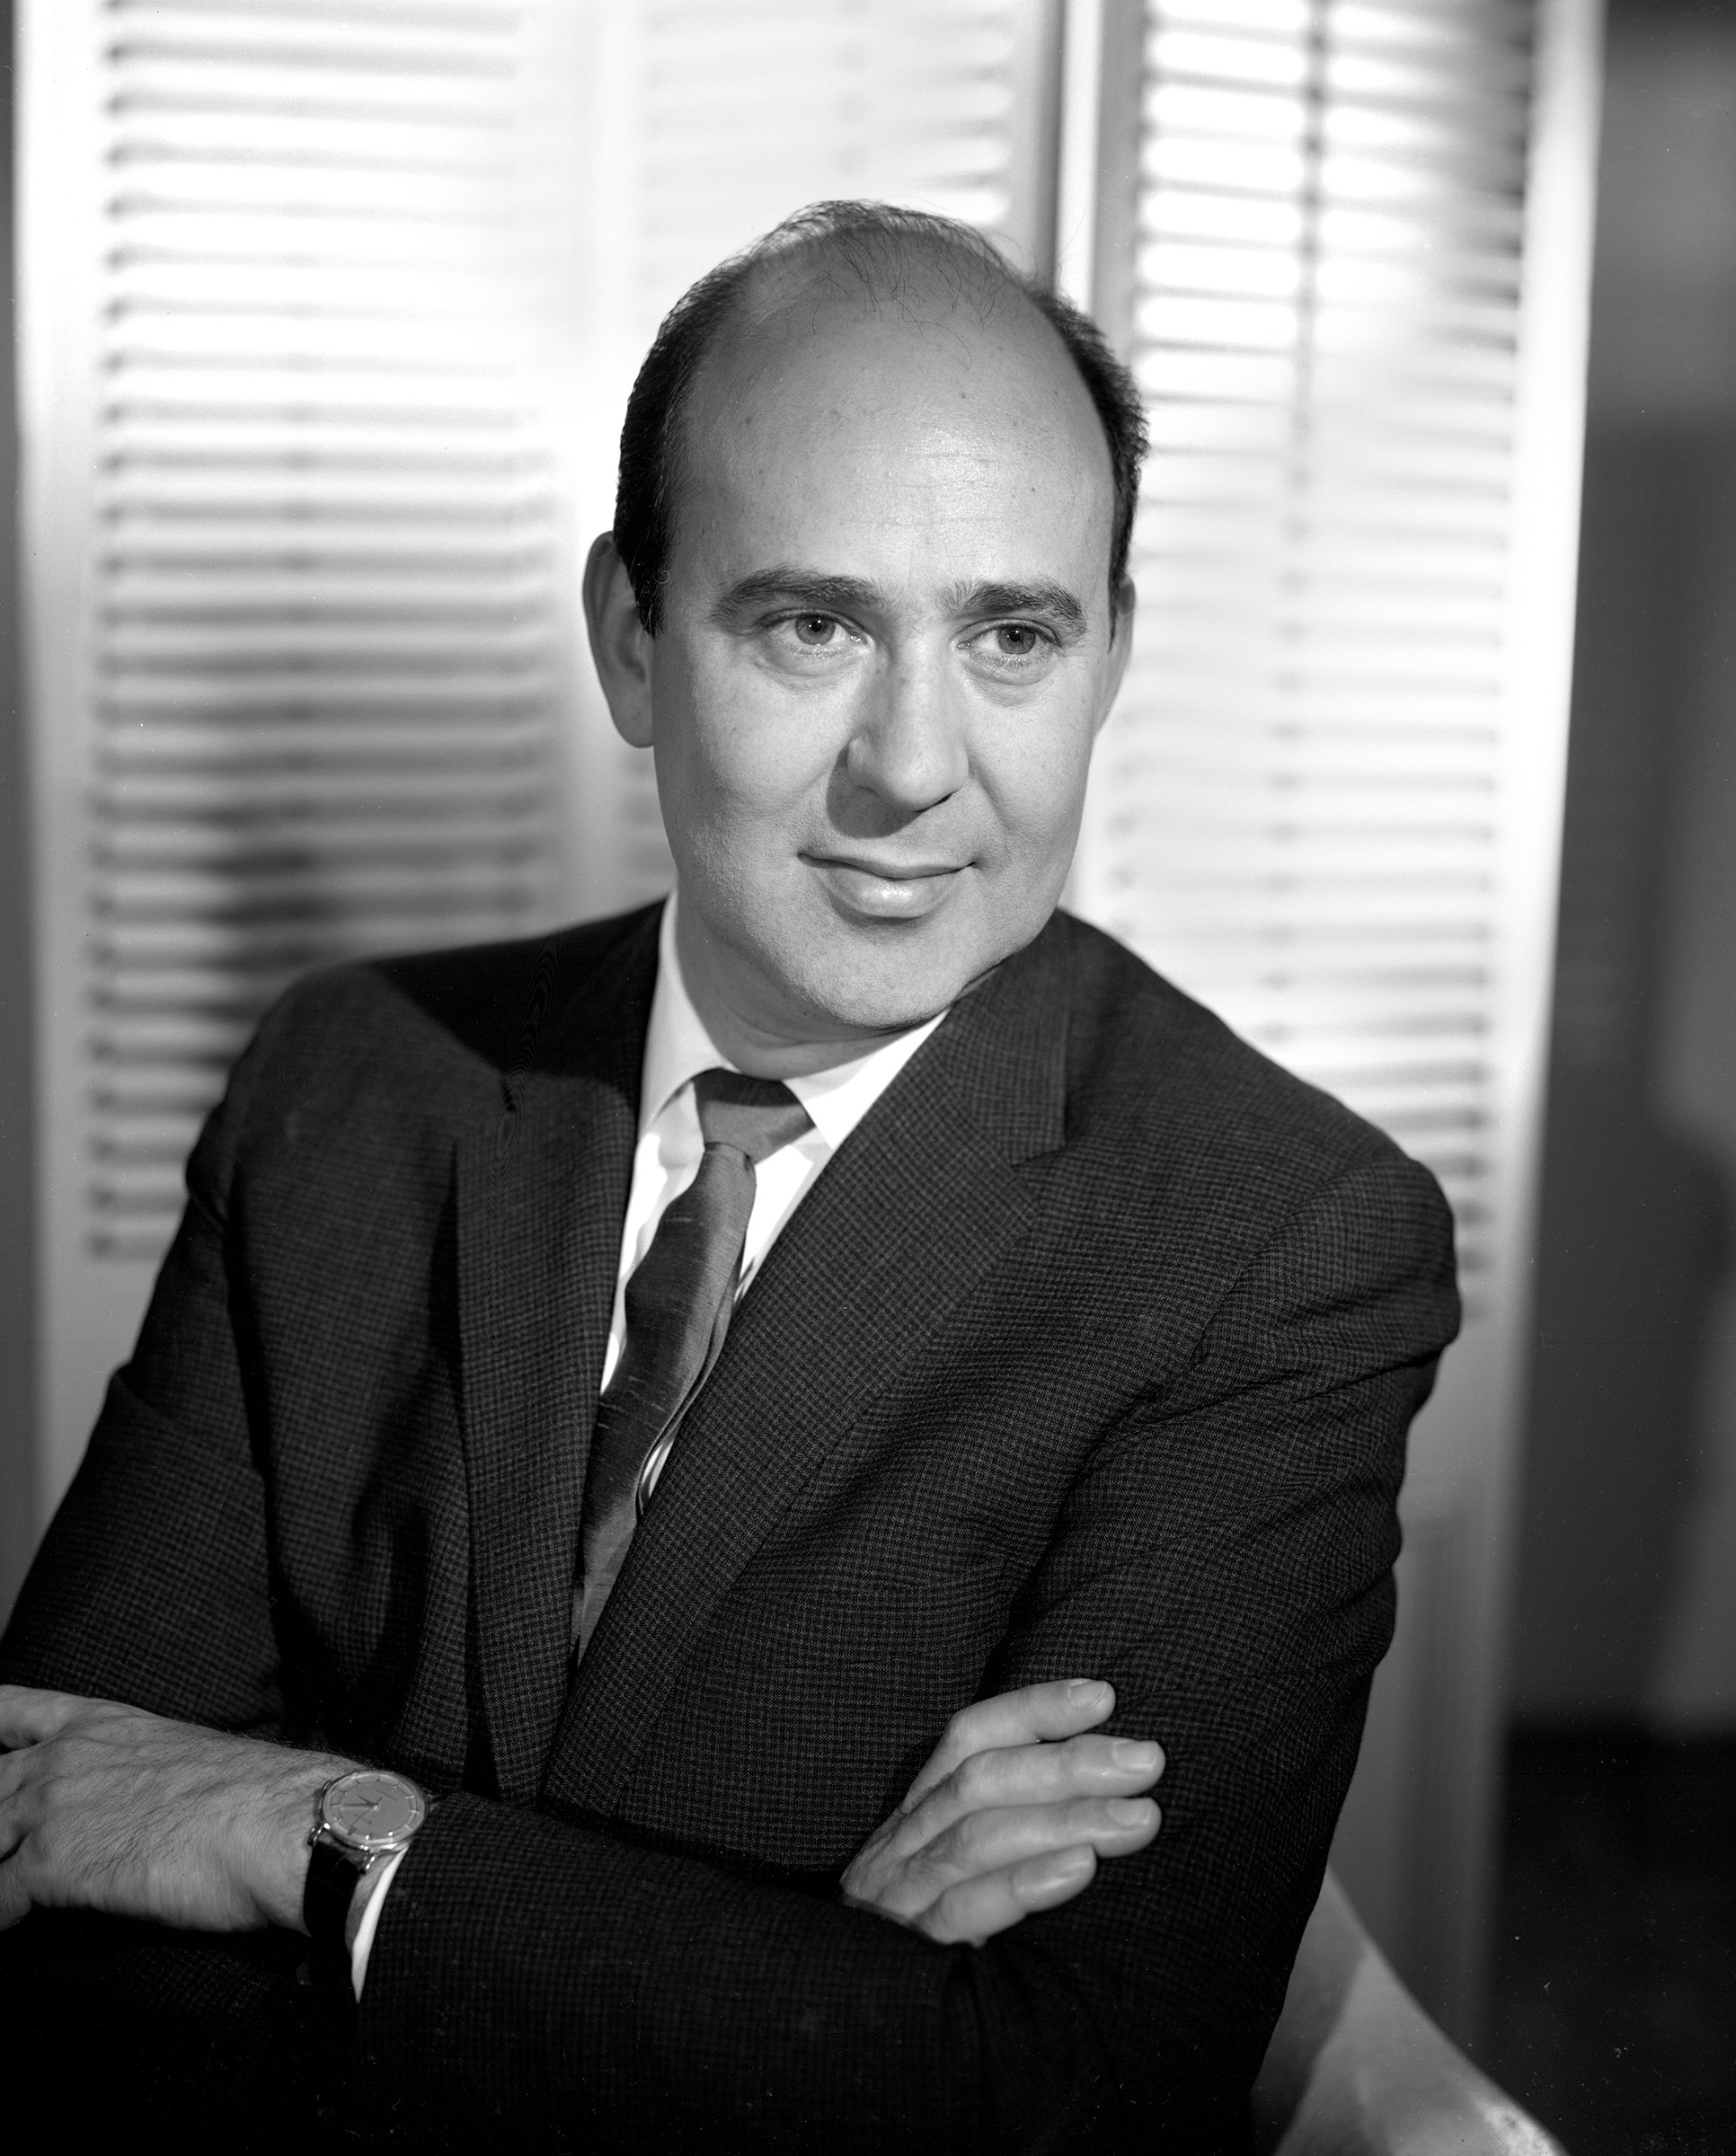 Carl Reiner photographed in May 1962 in Hollywood, Calif.